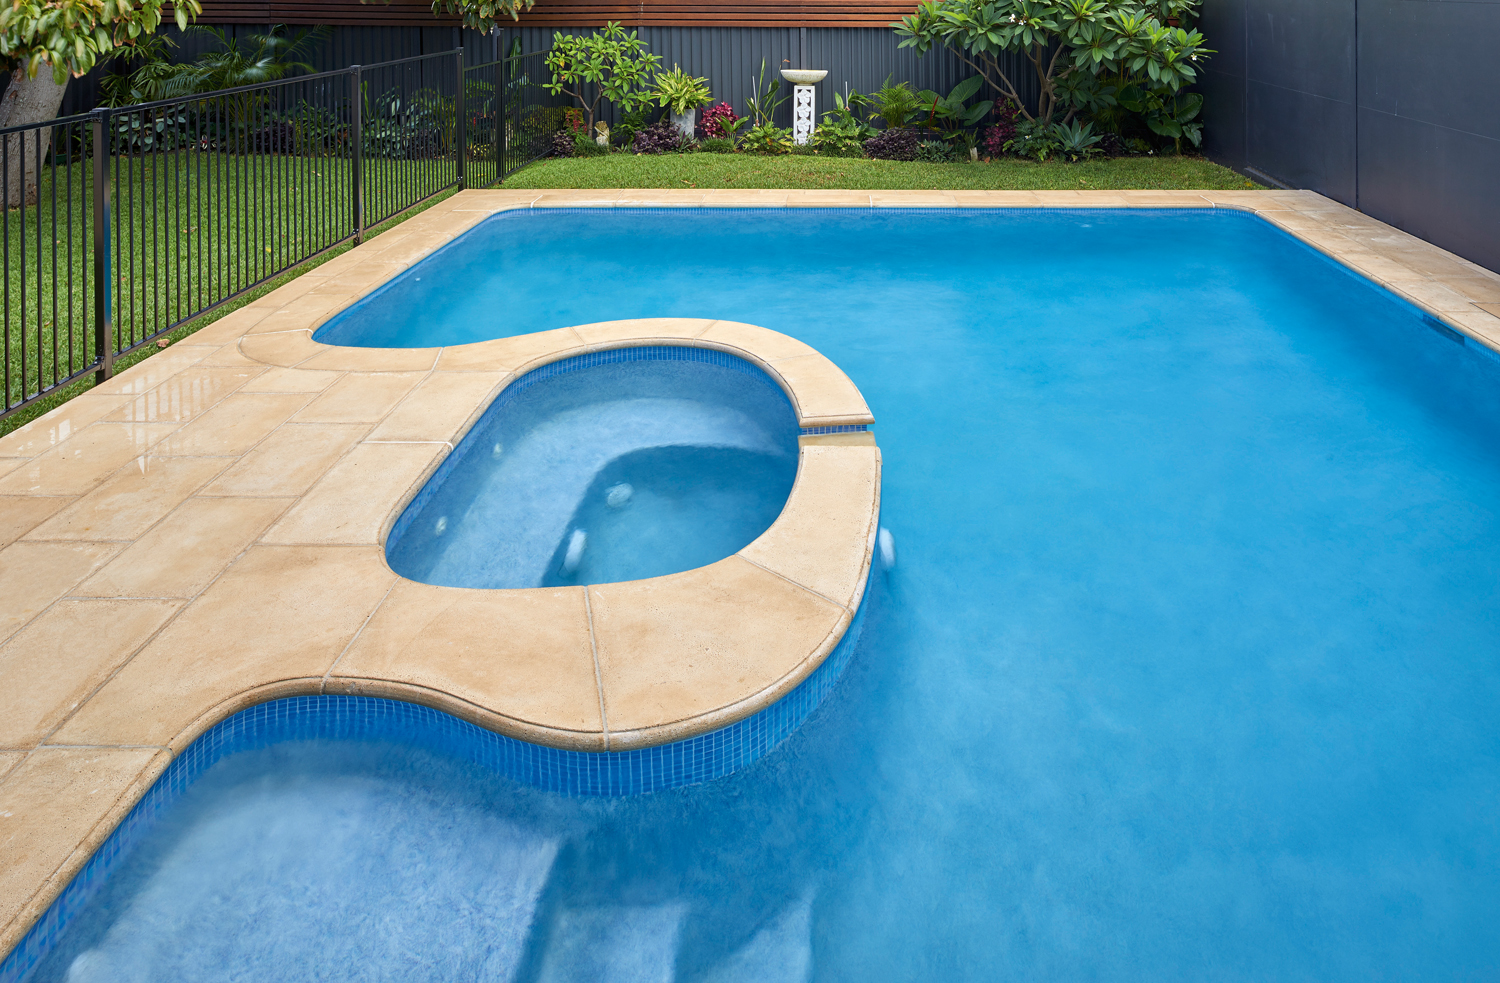 This stone pool coping is highly versatile and functional in any space